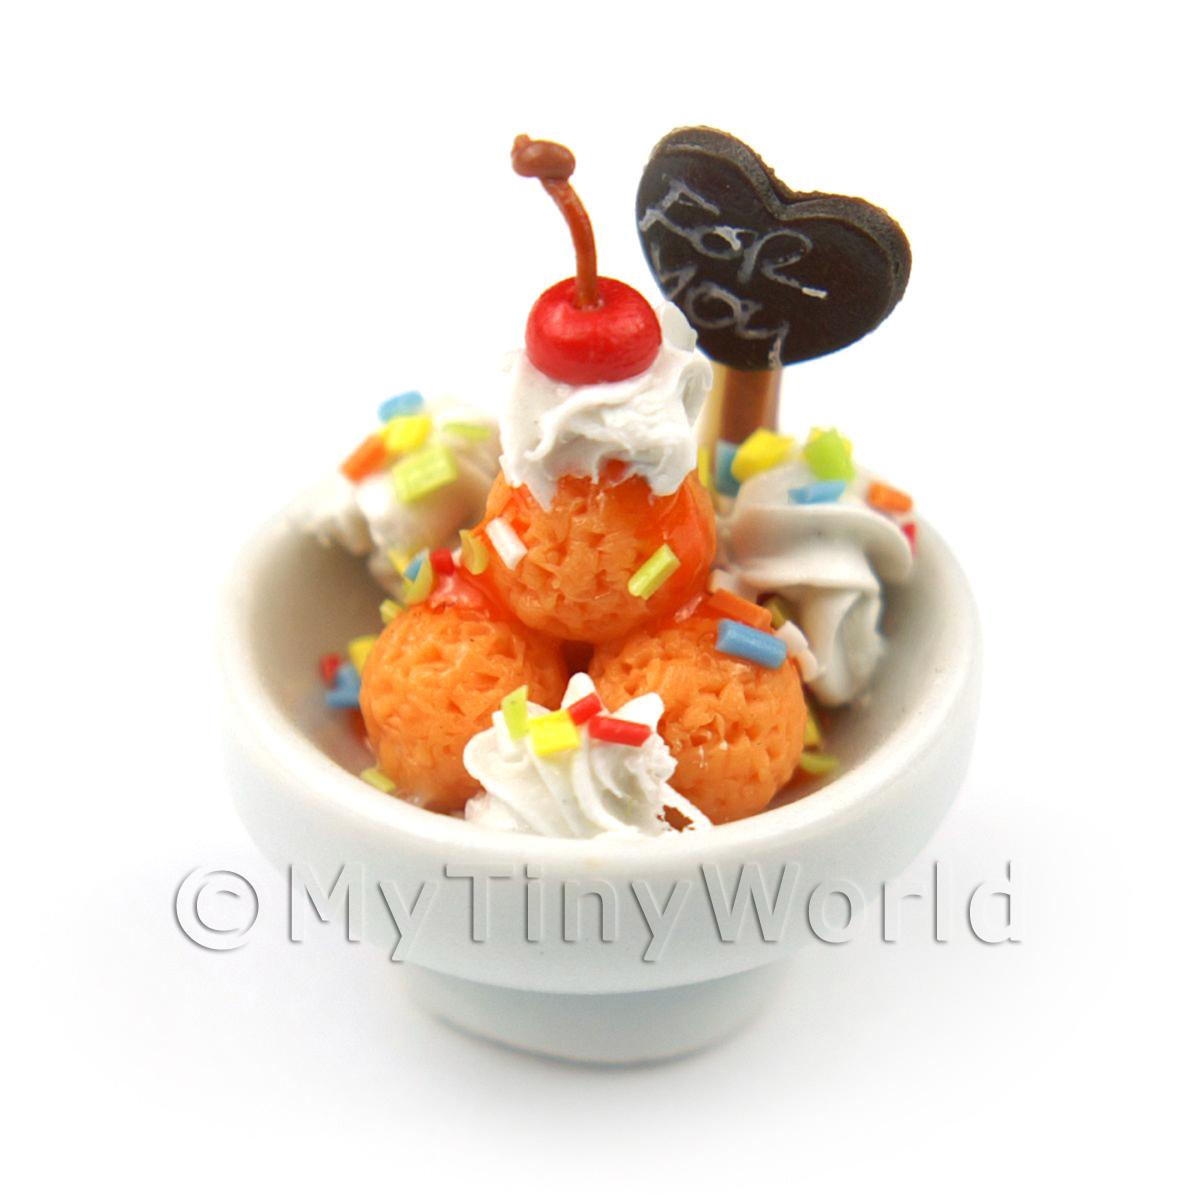 Dolls House Miniature Ice Cream Scoops in a Bowl